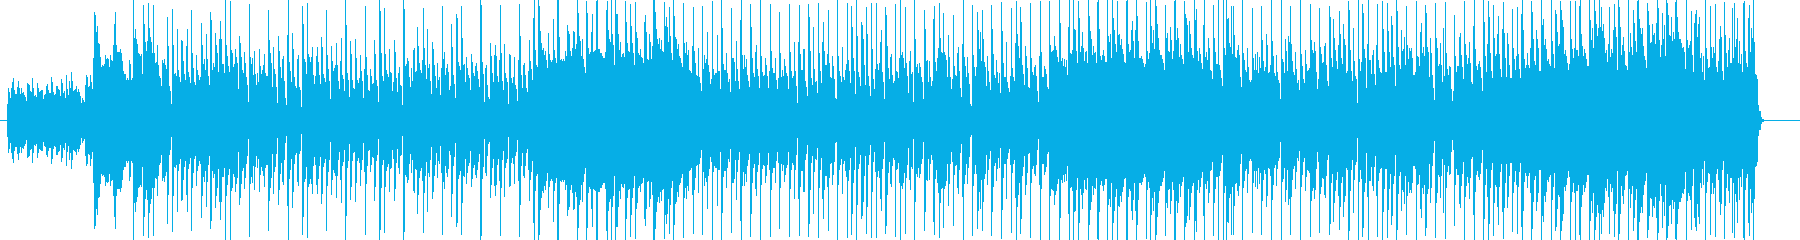 Country style image of nomadic life's reproduced waveform